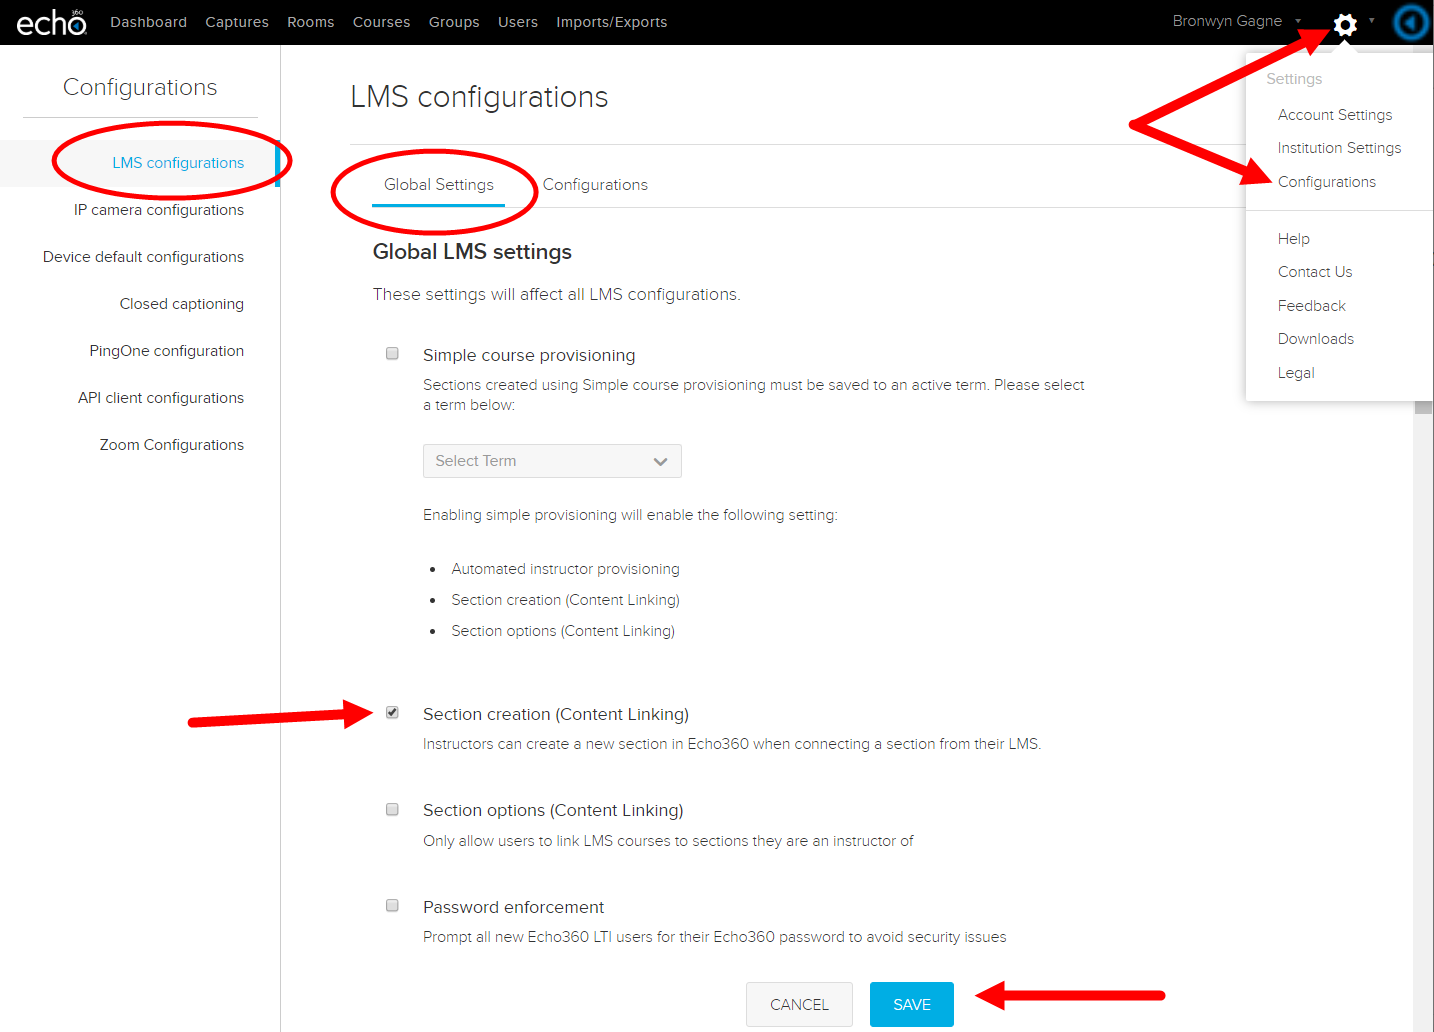 LMS Configurations page with Global Settings shown and Section creation option identified for steps as described